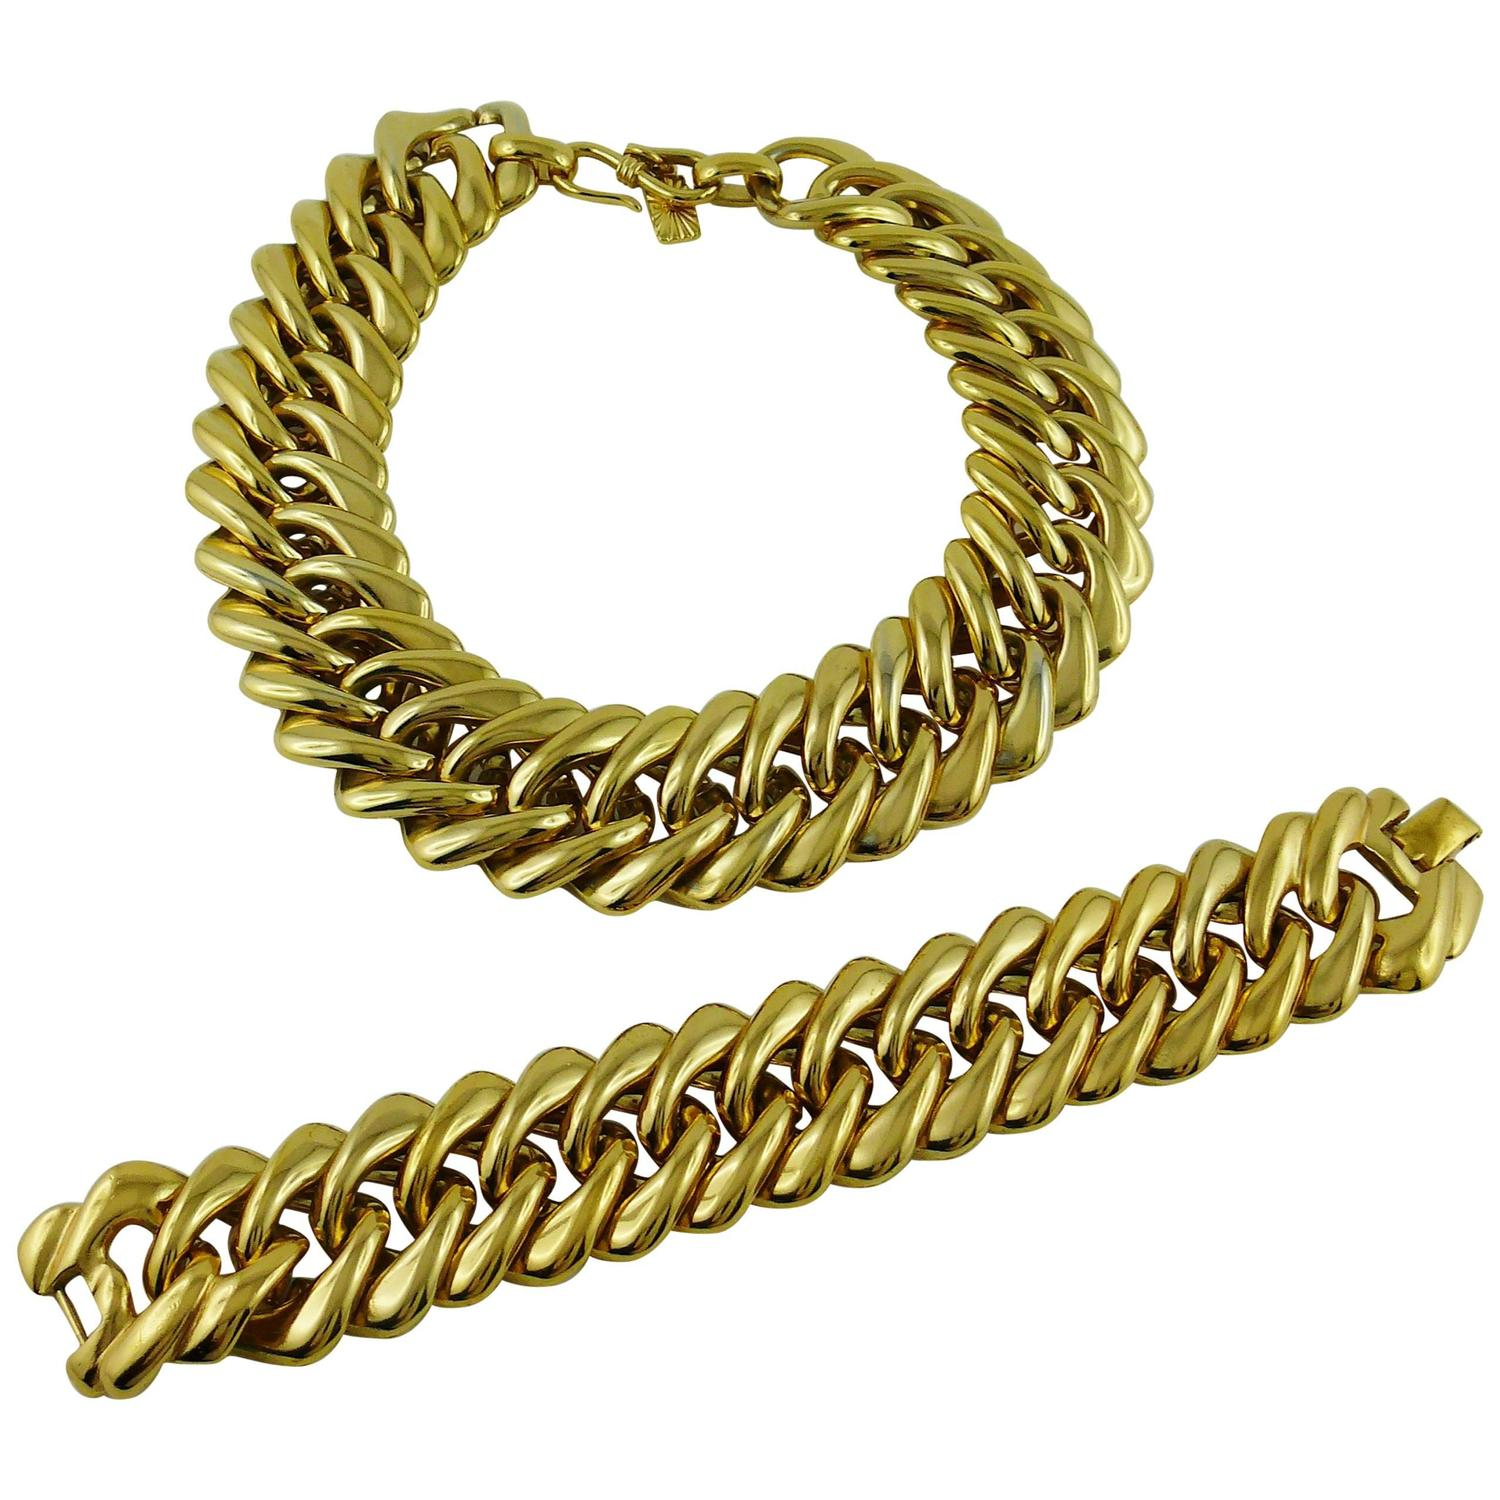 Yves saint laurent ysl vintage classic curb chain necklace bracelet set for sale at 1stdibs - Bracelet yves saint laurent ...